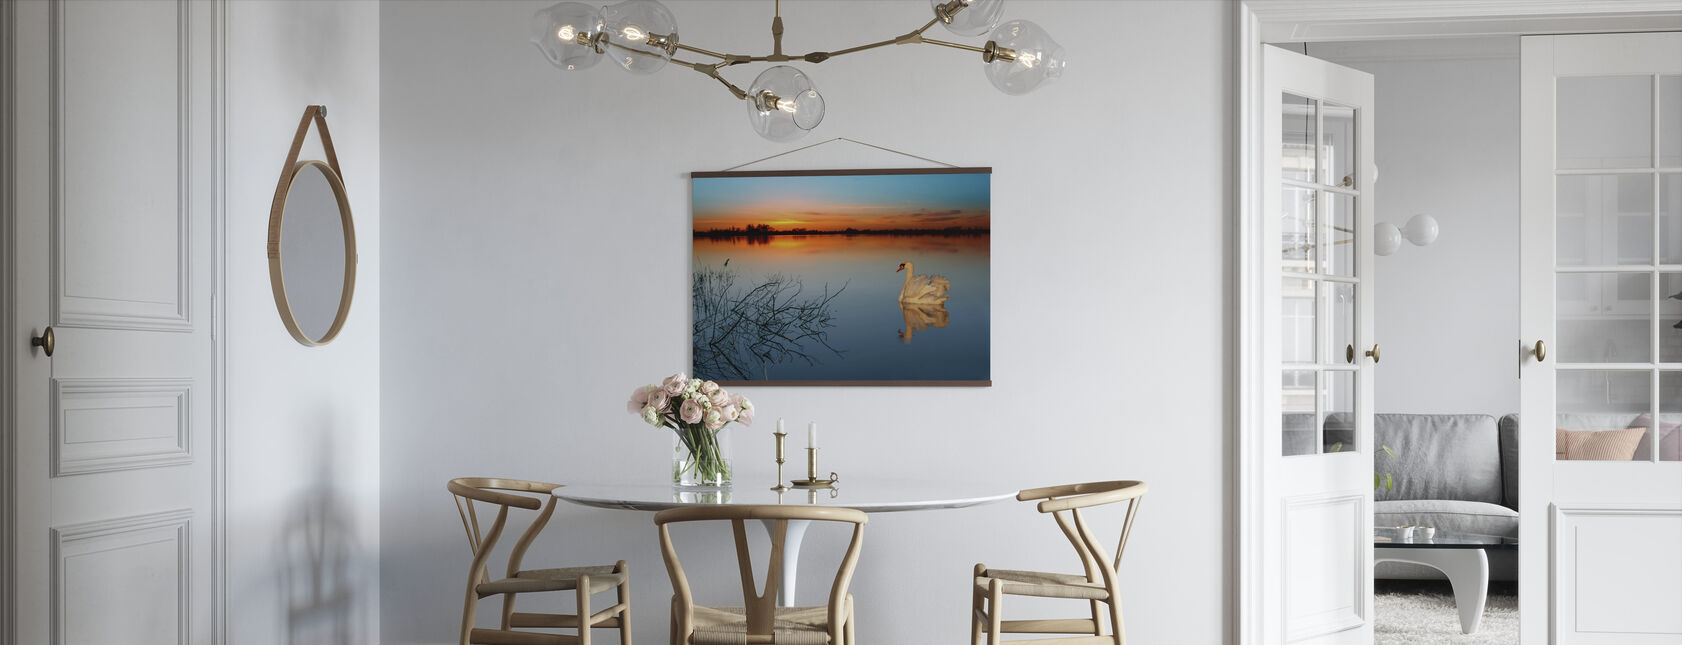 Swan on a lake - Poster - Kitchen